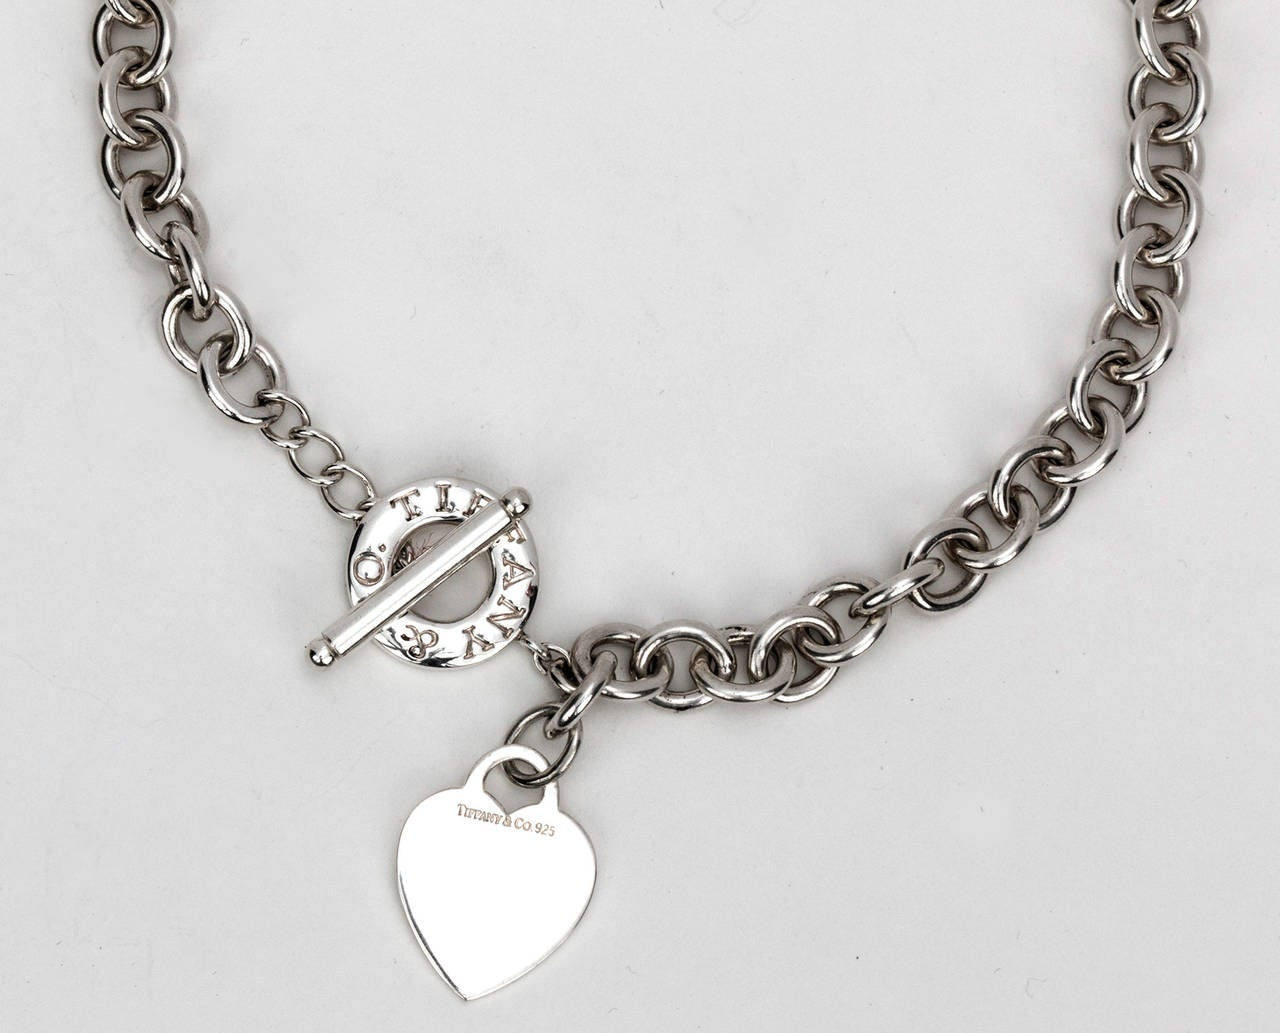 and co sterling silver necklace chain at 1stdibs